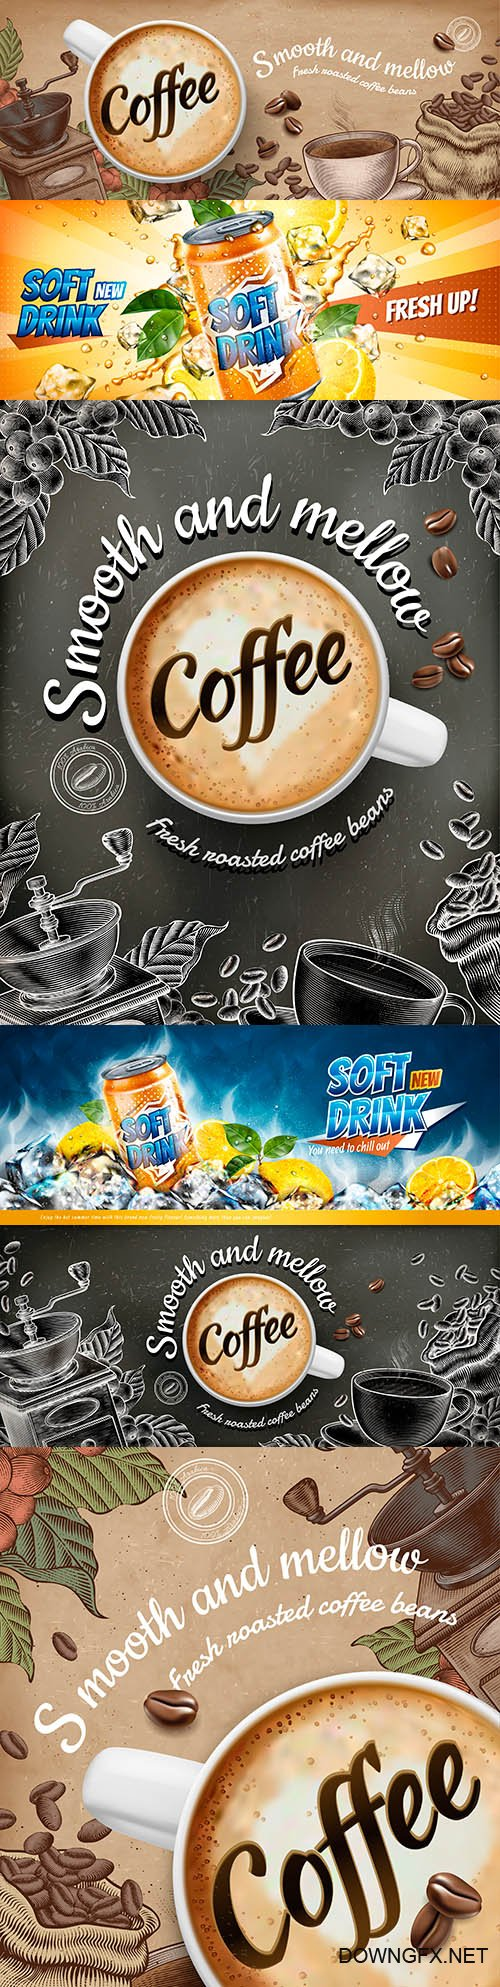 Banner advertising of soft citrus drinks and coffee latte